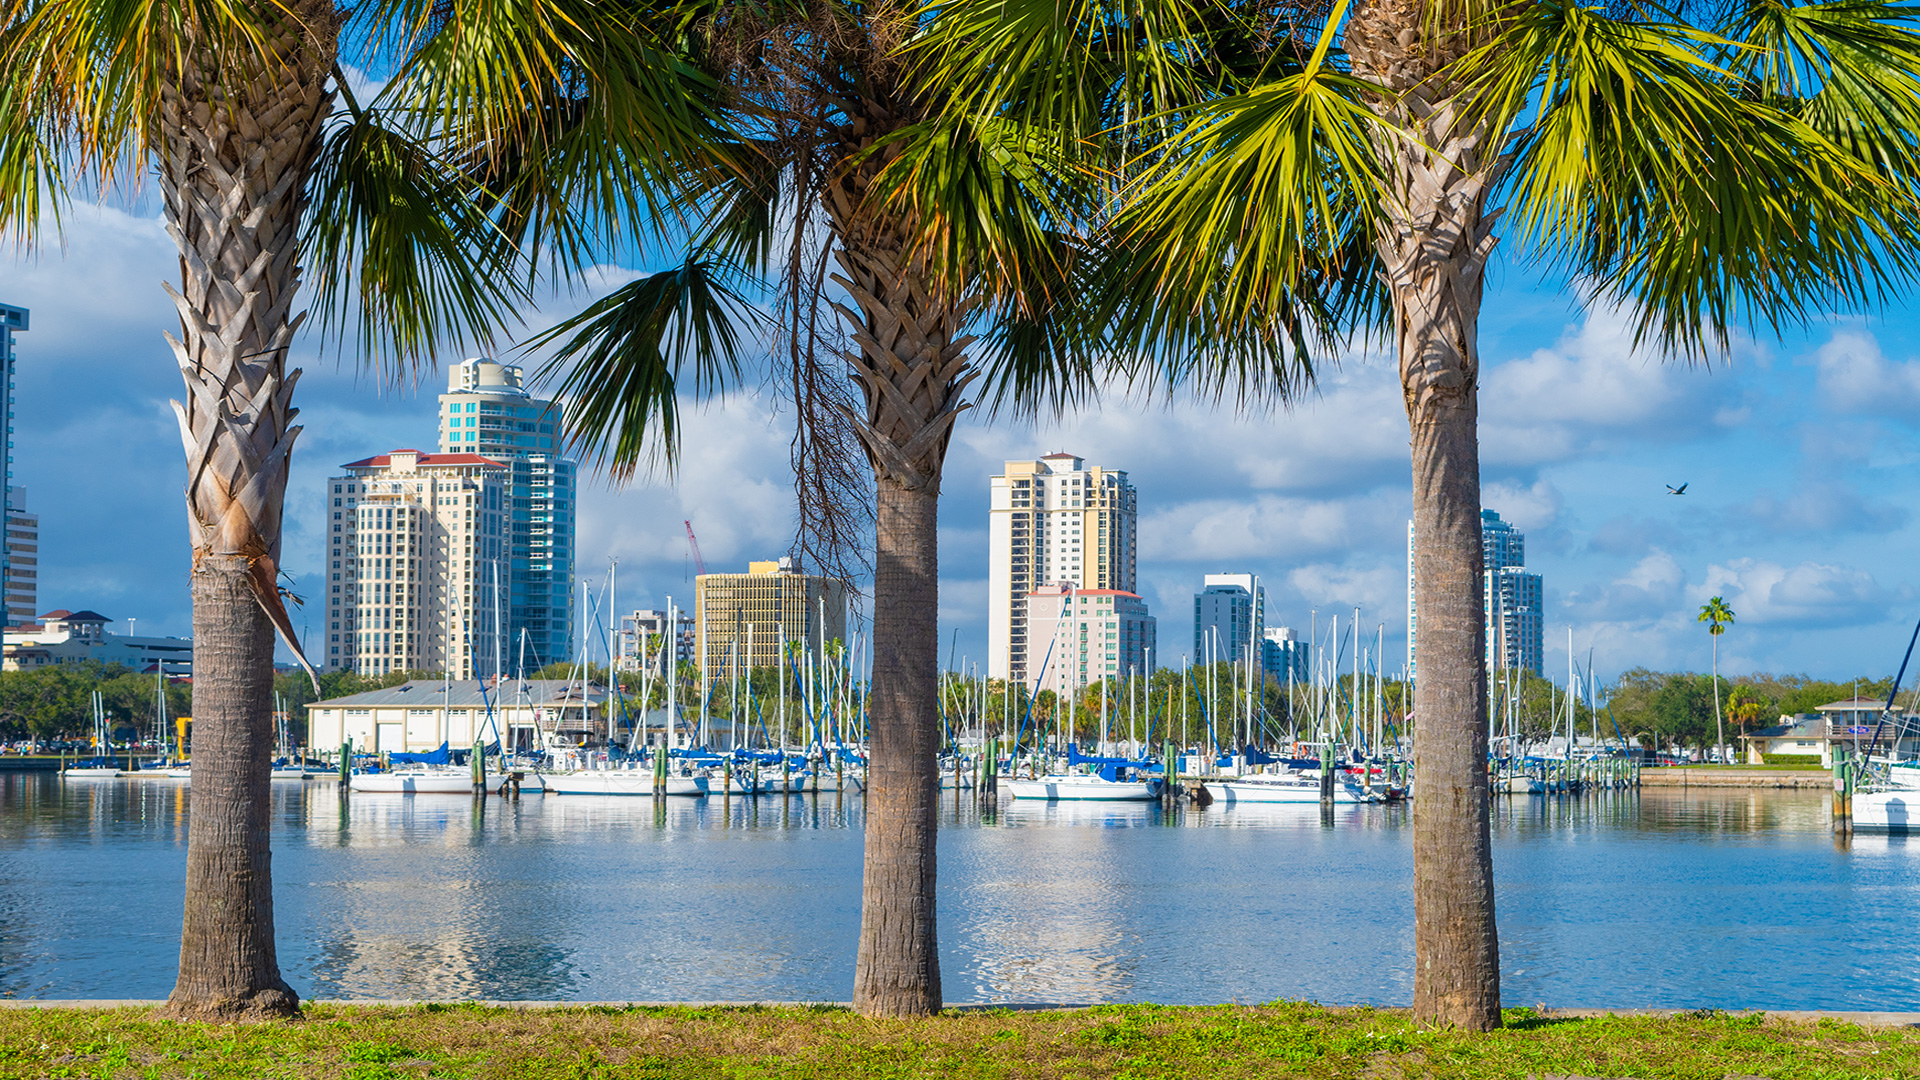 St. Petersburg Florida